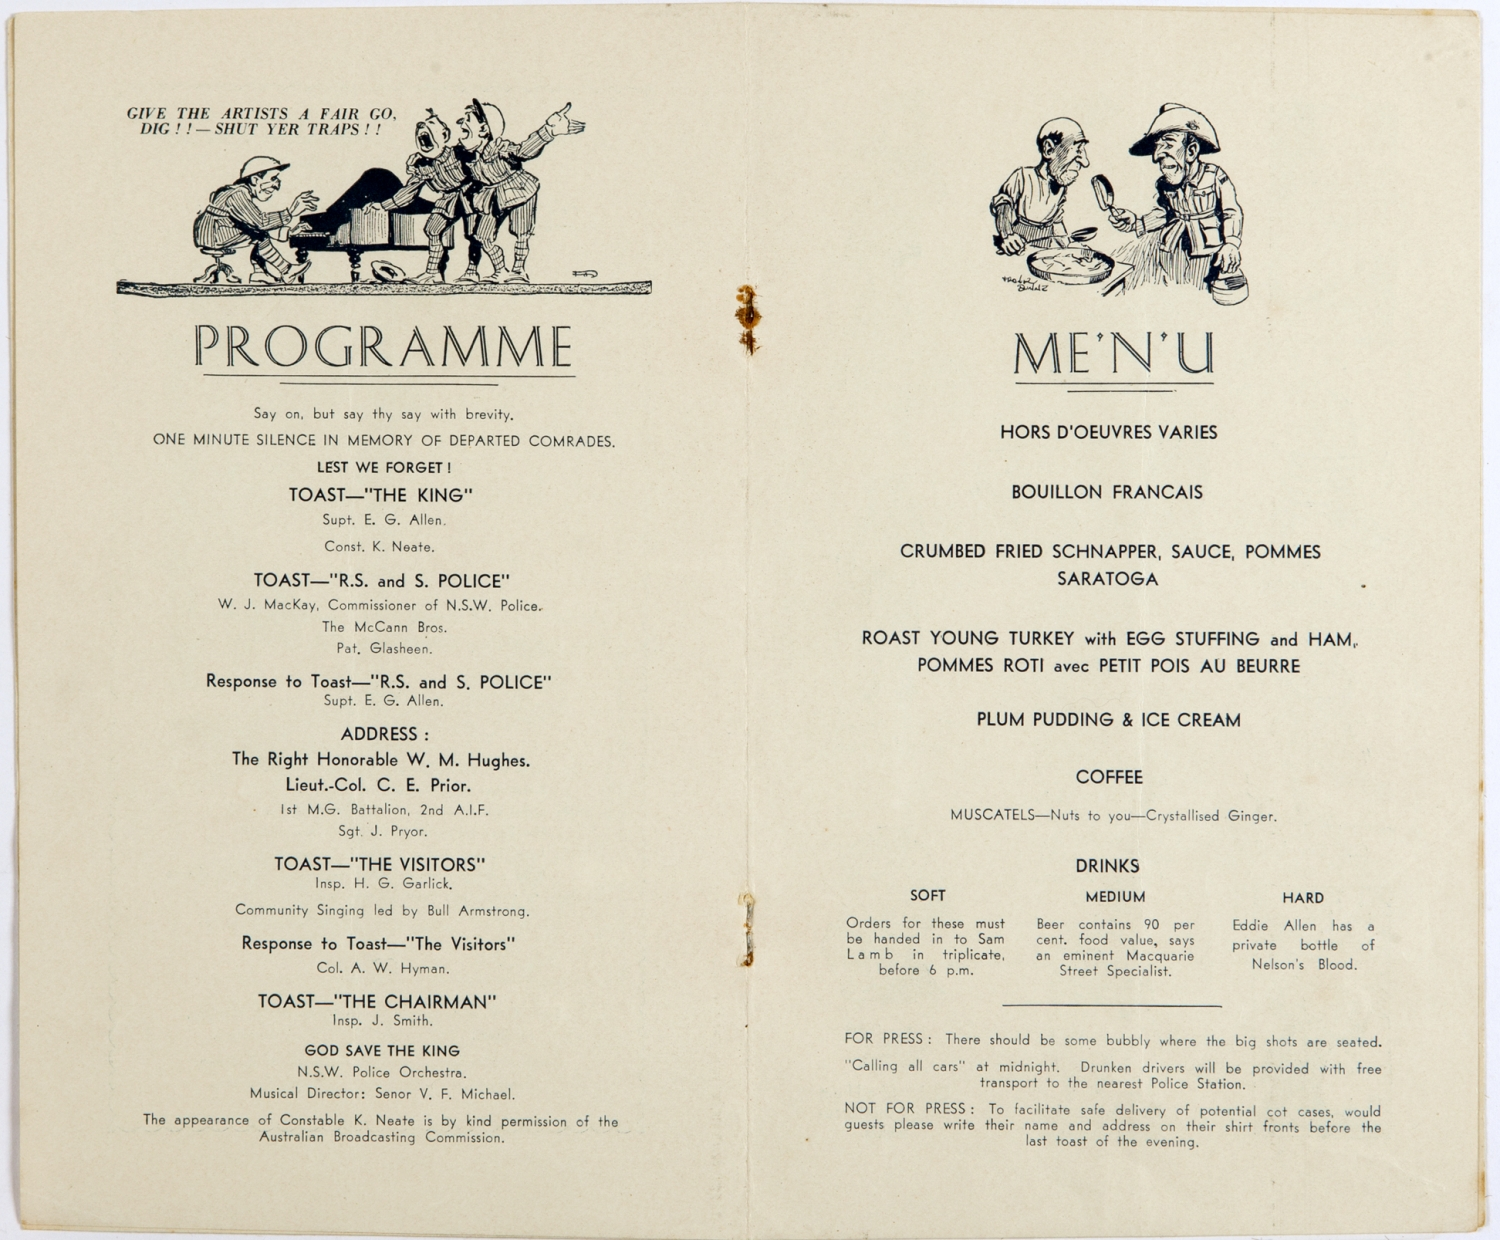 Inside pages of printed programme and menu.